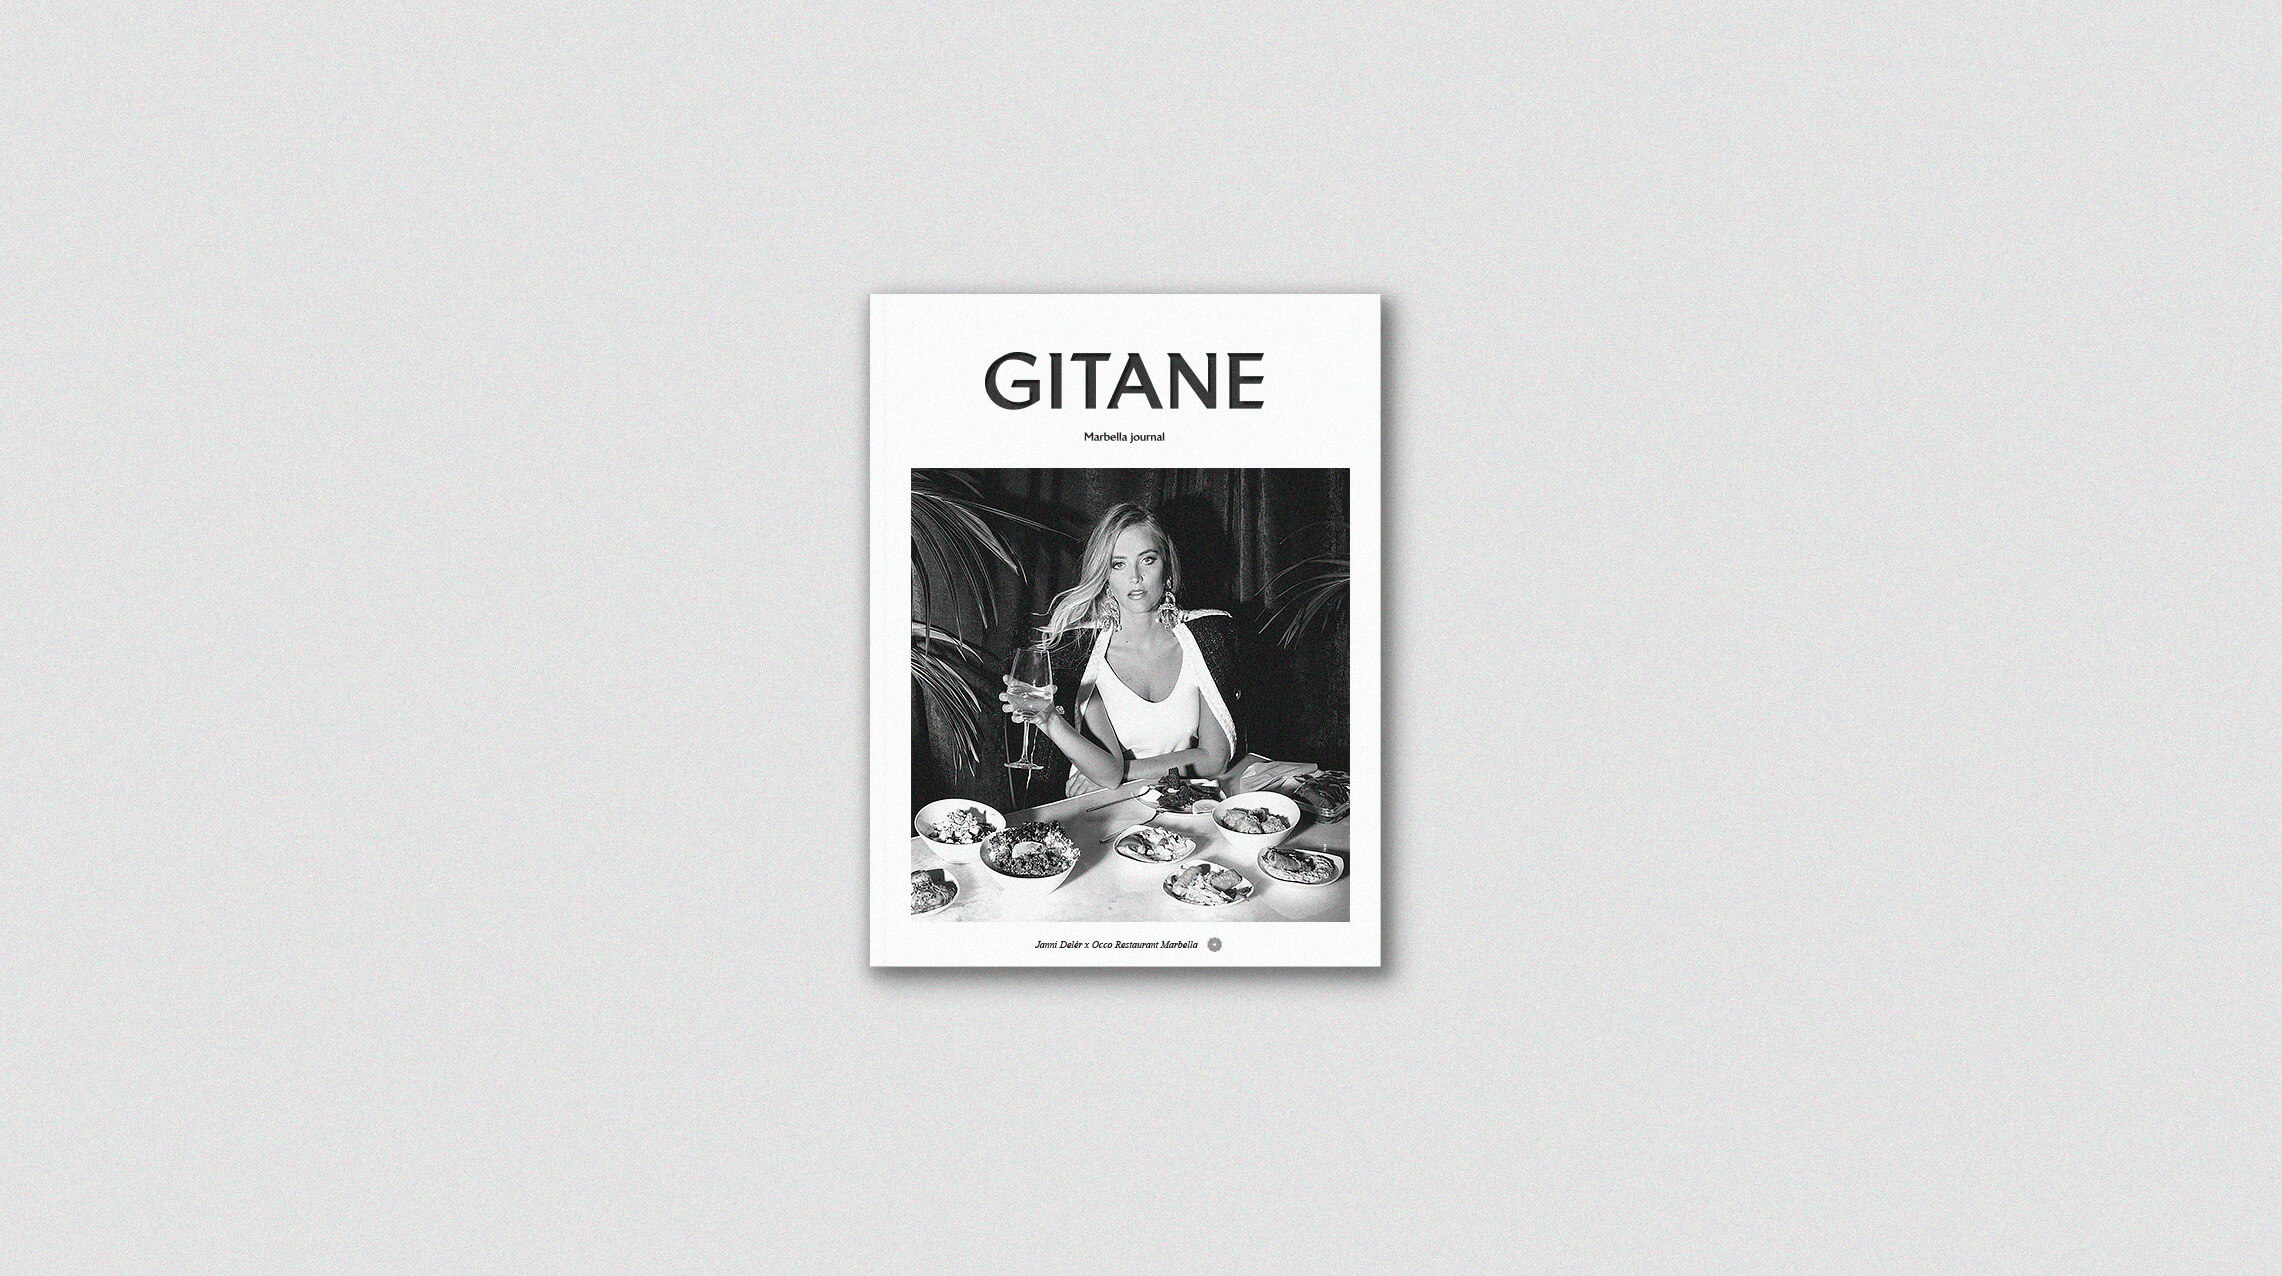 gitane-issue-one-cover-janni